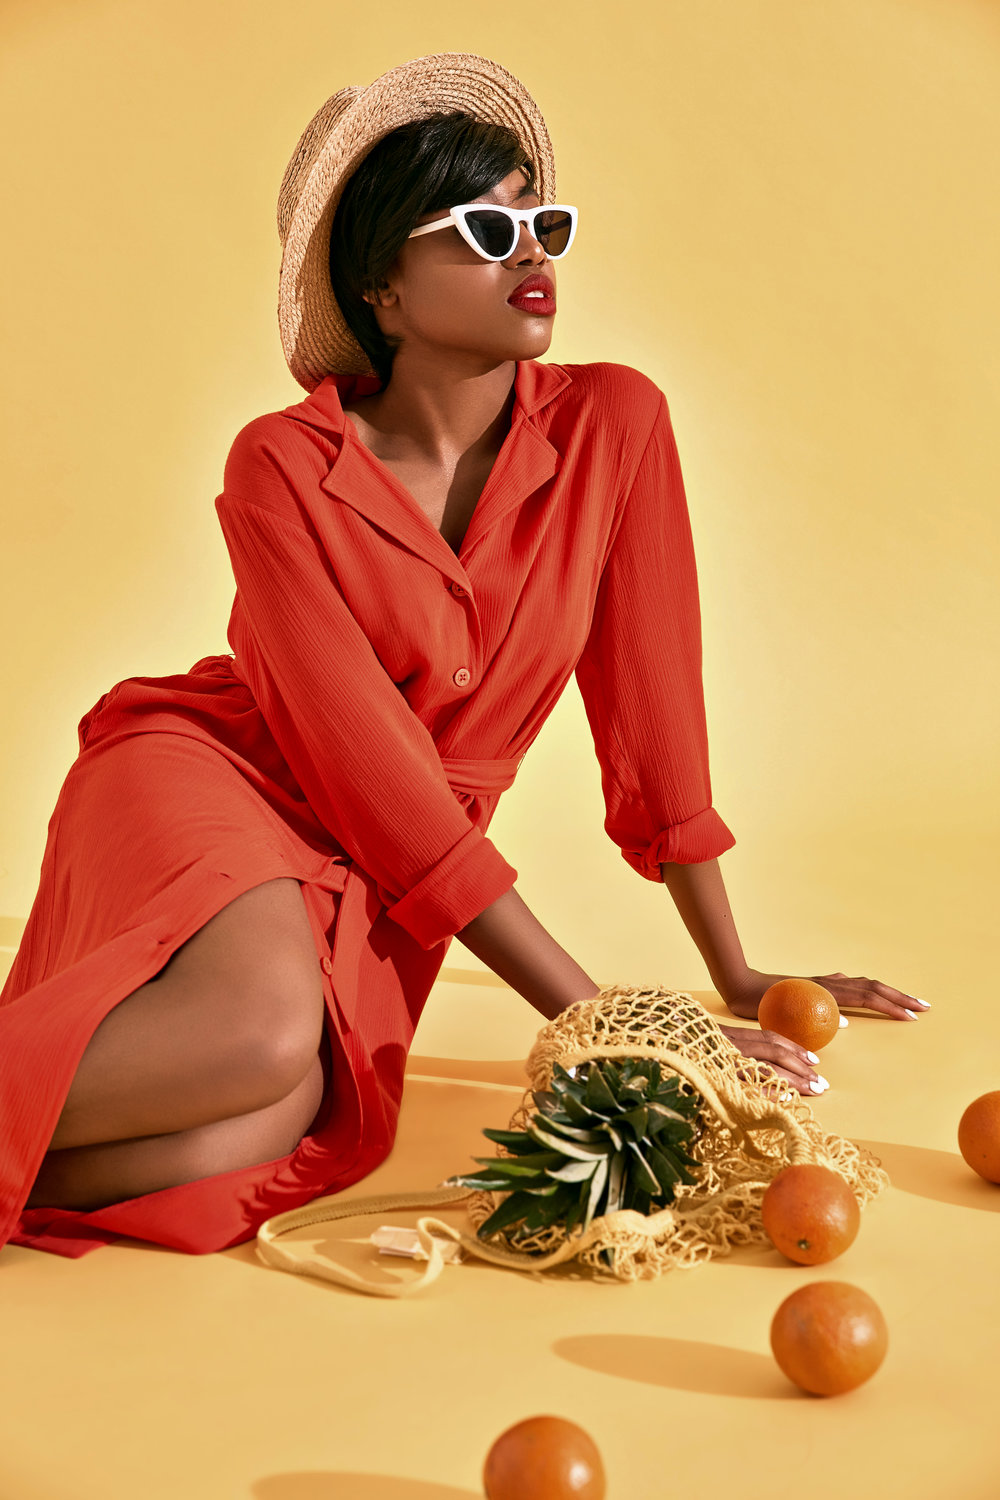 Studio shot of young black woman with short hair and big red lips dressed in orange dress straw hat and shoes and white sunglasses set down near oranges and pineapple. Yellow background